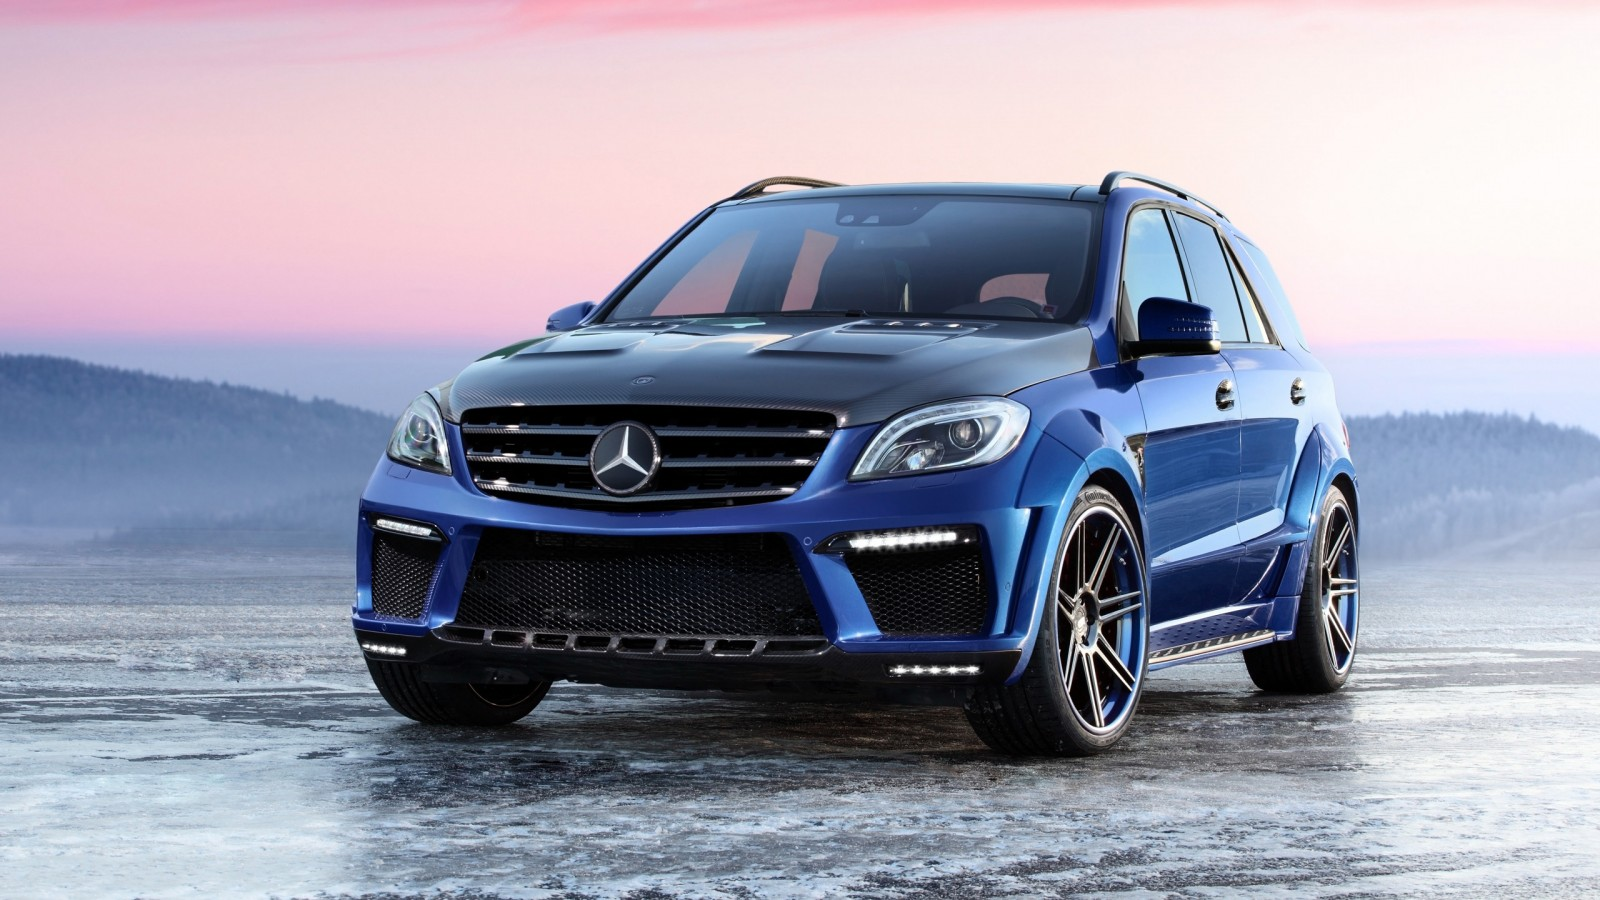 2013 mercedes benz ml 63 amg inferno by topcar wallpaper for Mercedes benz amg ml63